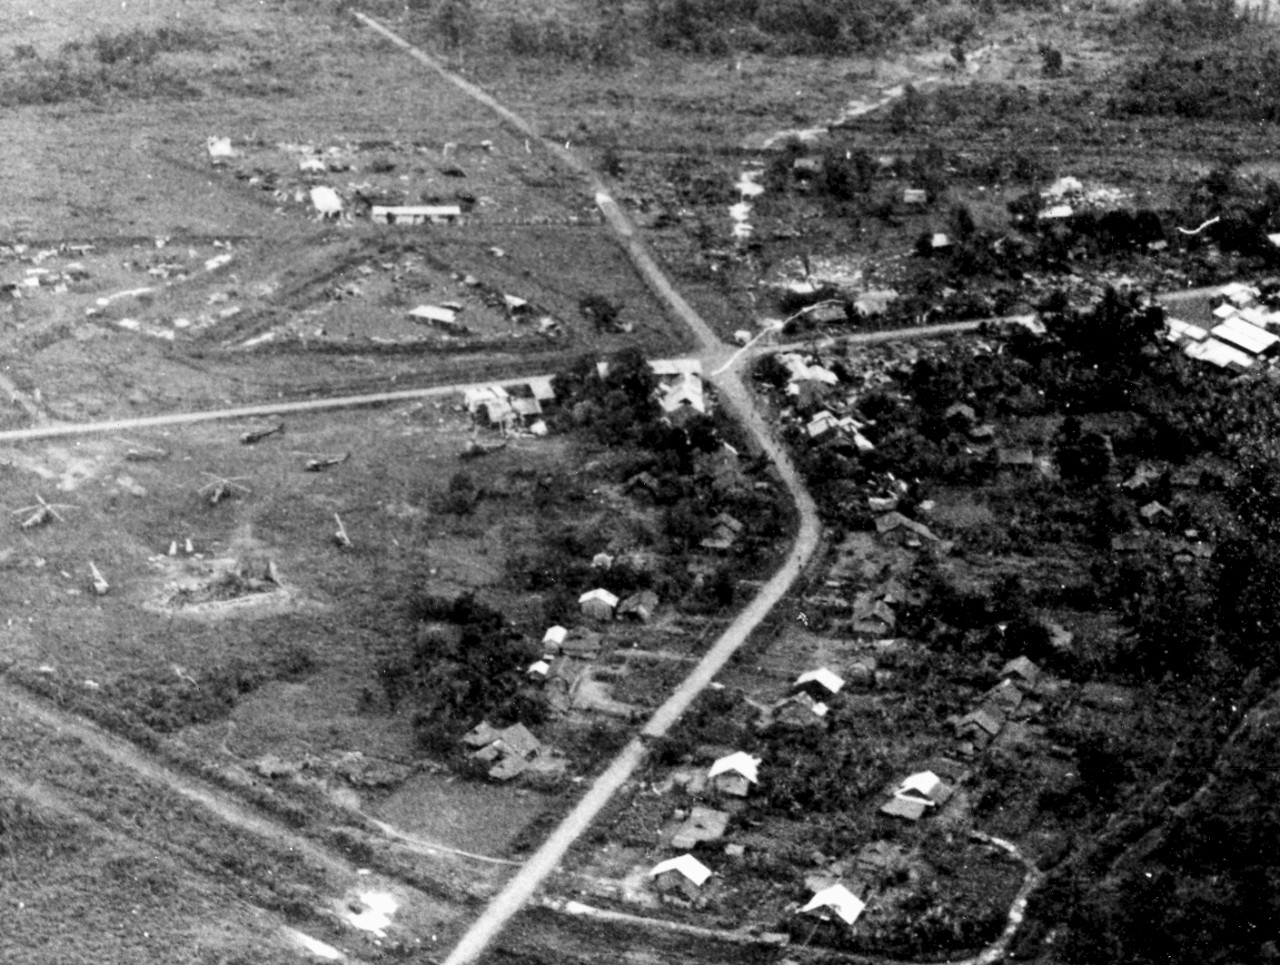 <p>Special Forces camp at Dong Xoai after the Viet Cong attack, June 1965. The Special Forces compound supported three CIDG companies: a Regional Forces company, a small Vietnamese Special Forces detachment, and an armored car platoon.&nbsp; The Viet Cong attacked close to midnight on 10 June 1965, letting loose a 200-round barrage of 60mm mortars followed by a wave of hundreds of Viet Cong attacking the walls of the compound.</p>